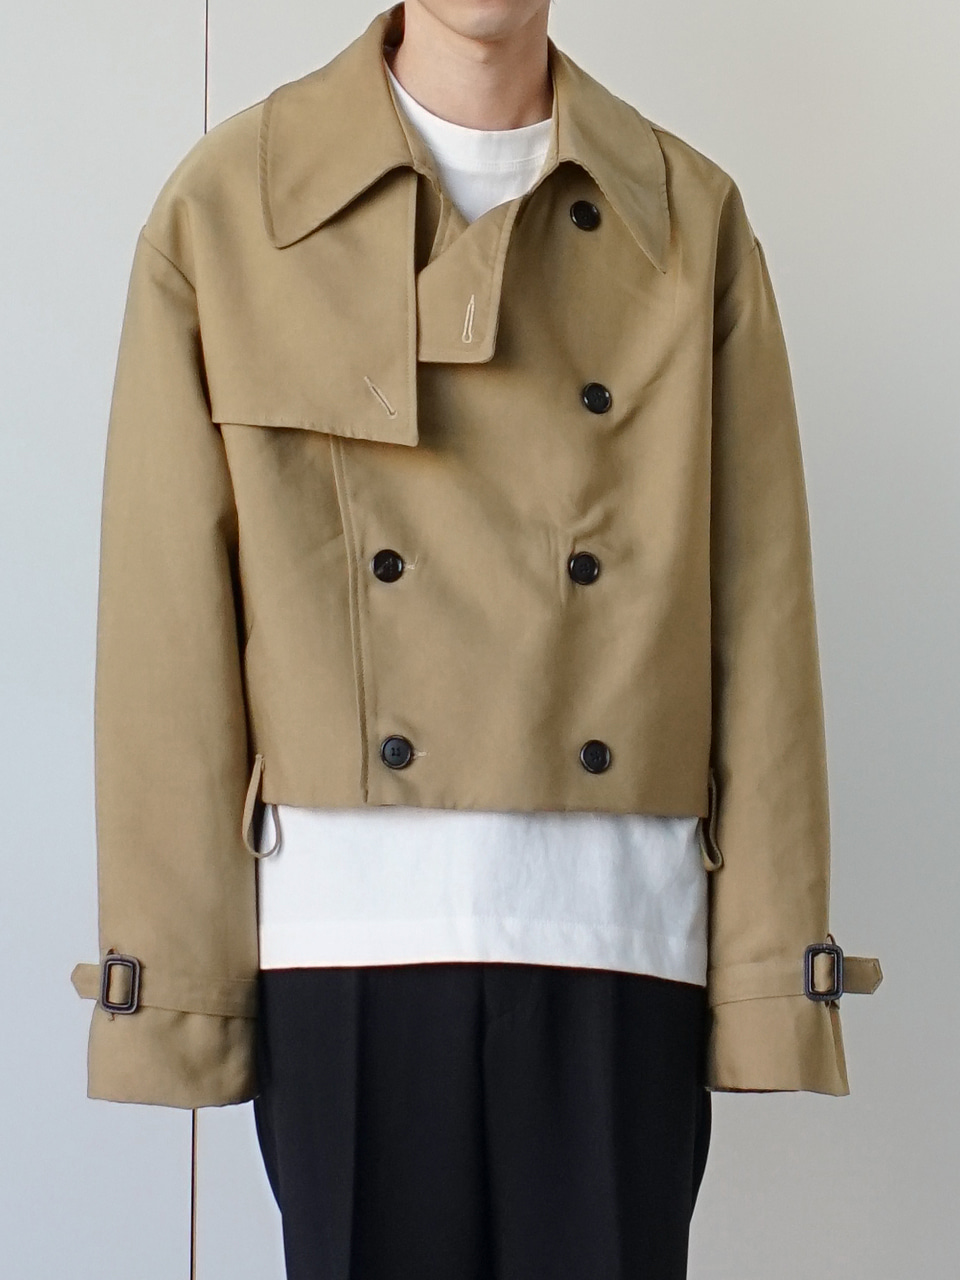 Ocean Short Trench Coat (2color)